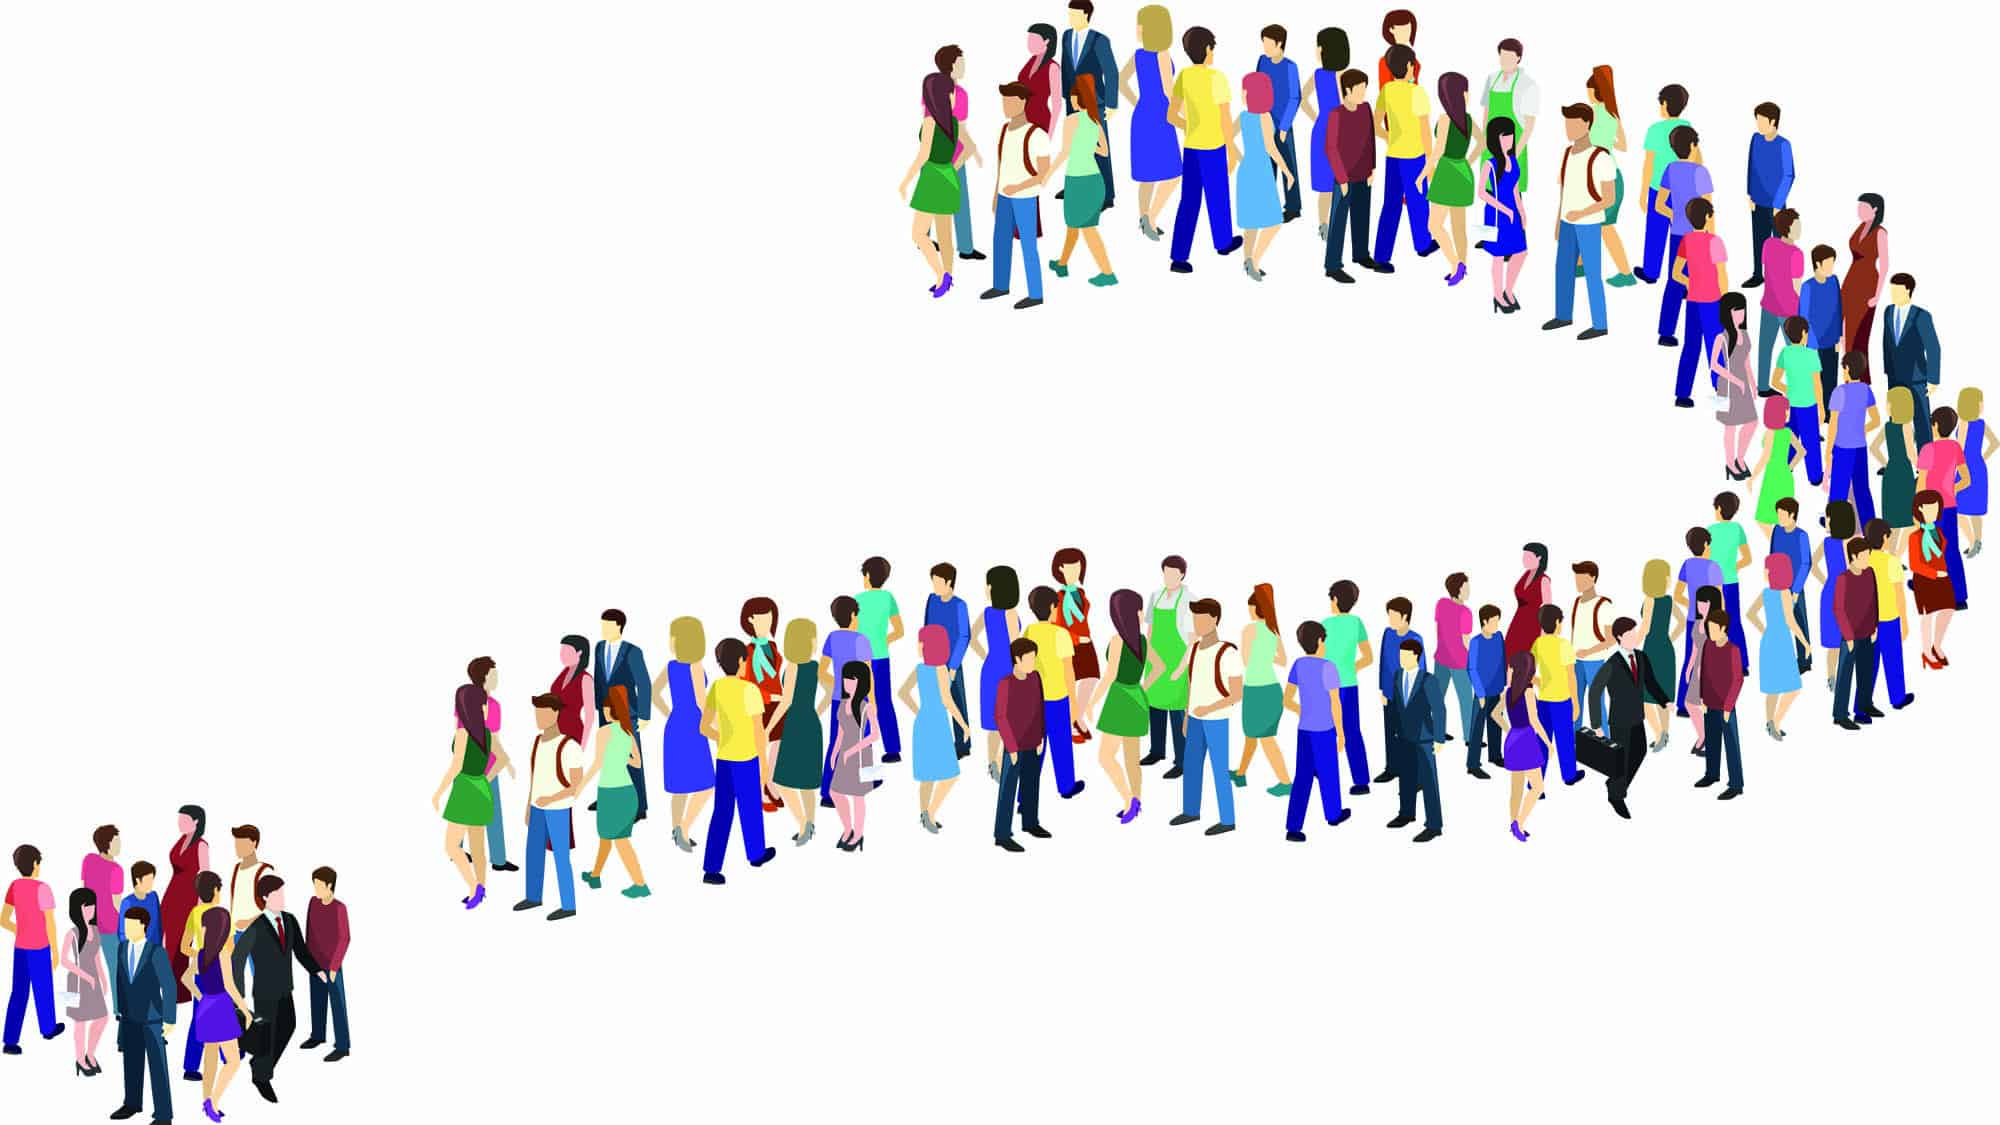 cartoon people grouped together to form a question mark symbol